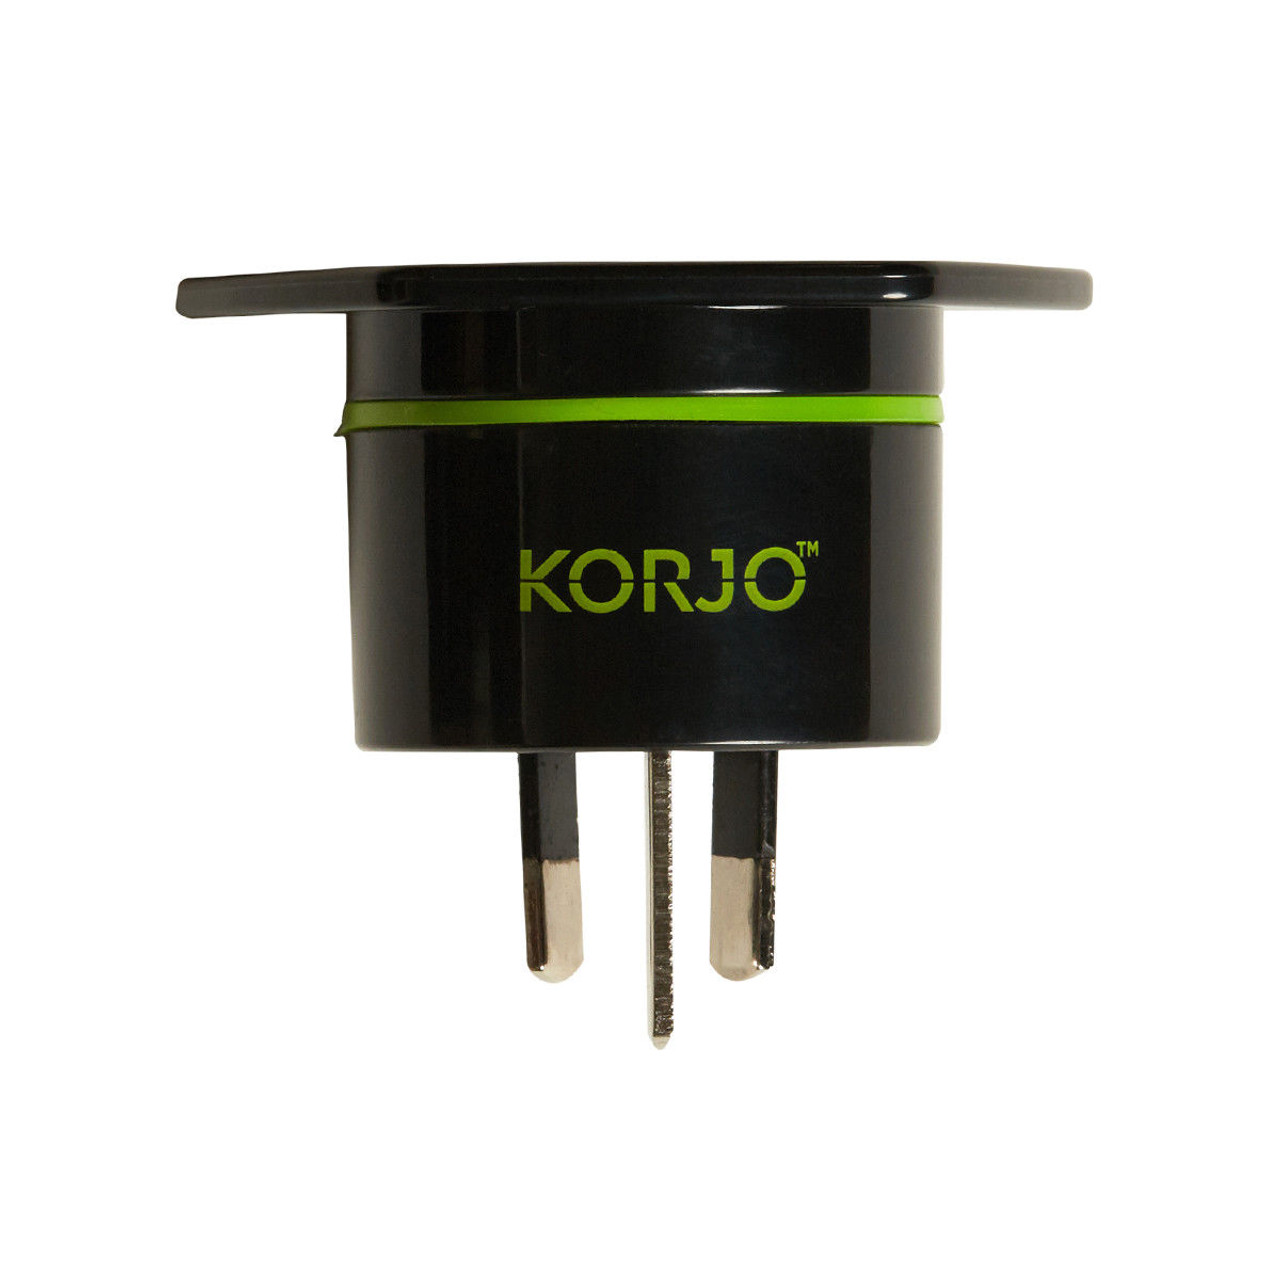 Korjo AA02 Adaptor for Australia – FROM UK, US Plus